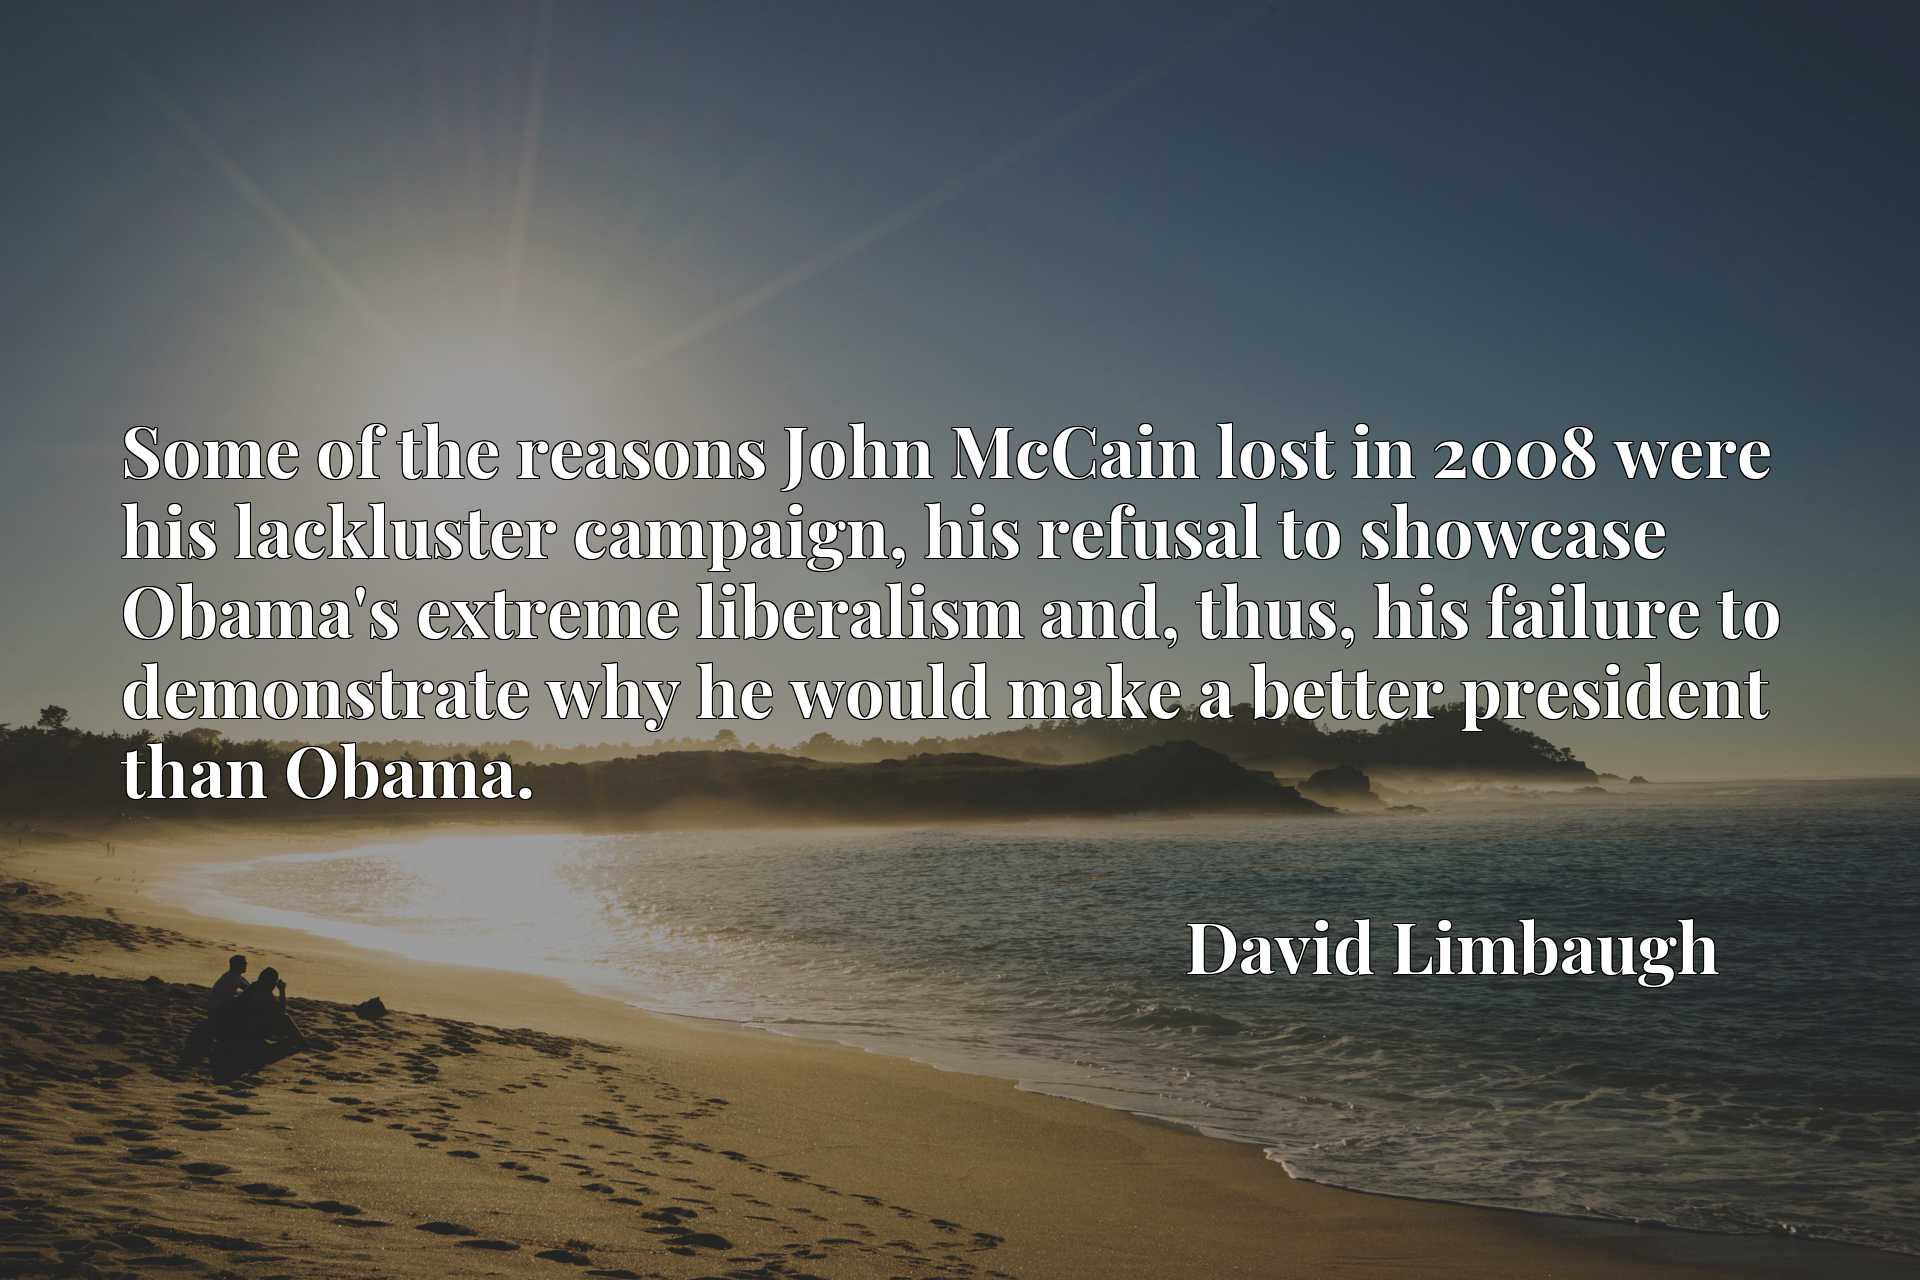 Some of the reasons John McCain lost in 2008 were his lackluster campaign, his refusal to showcase Obama's extreme liberalism and, thus, his failure to demonstrate why he would make a better president than Obama.